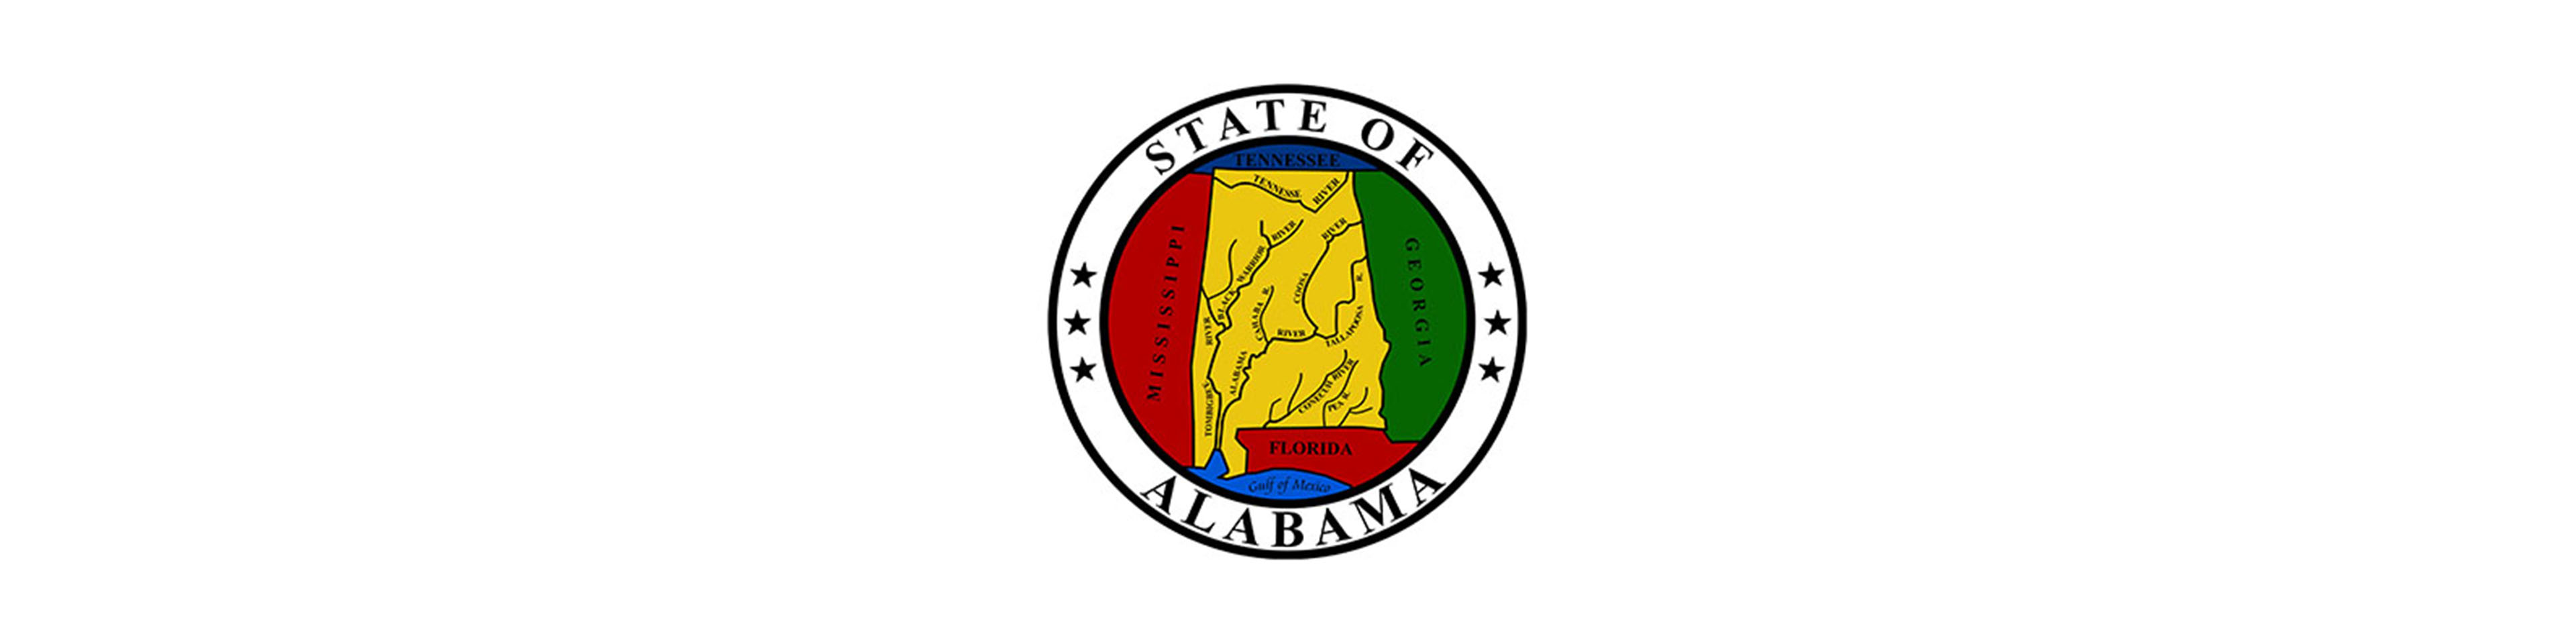 Alabama Enacts New Corporation Law